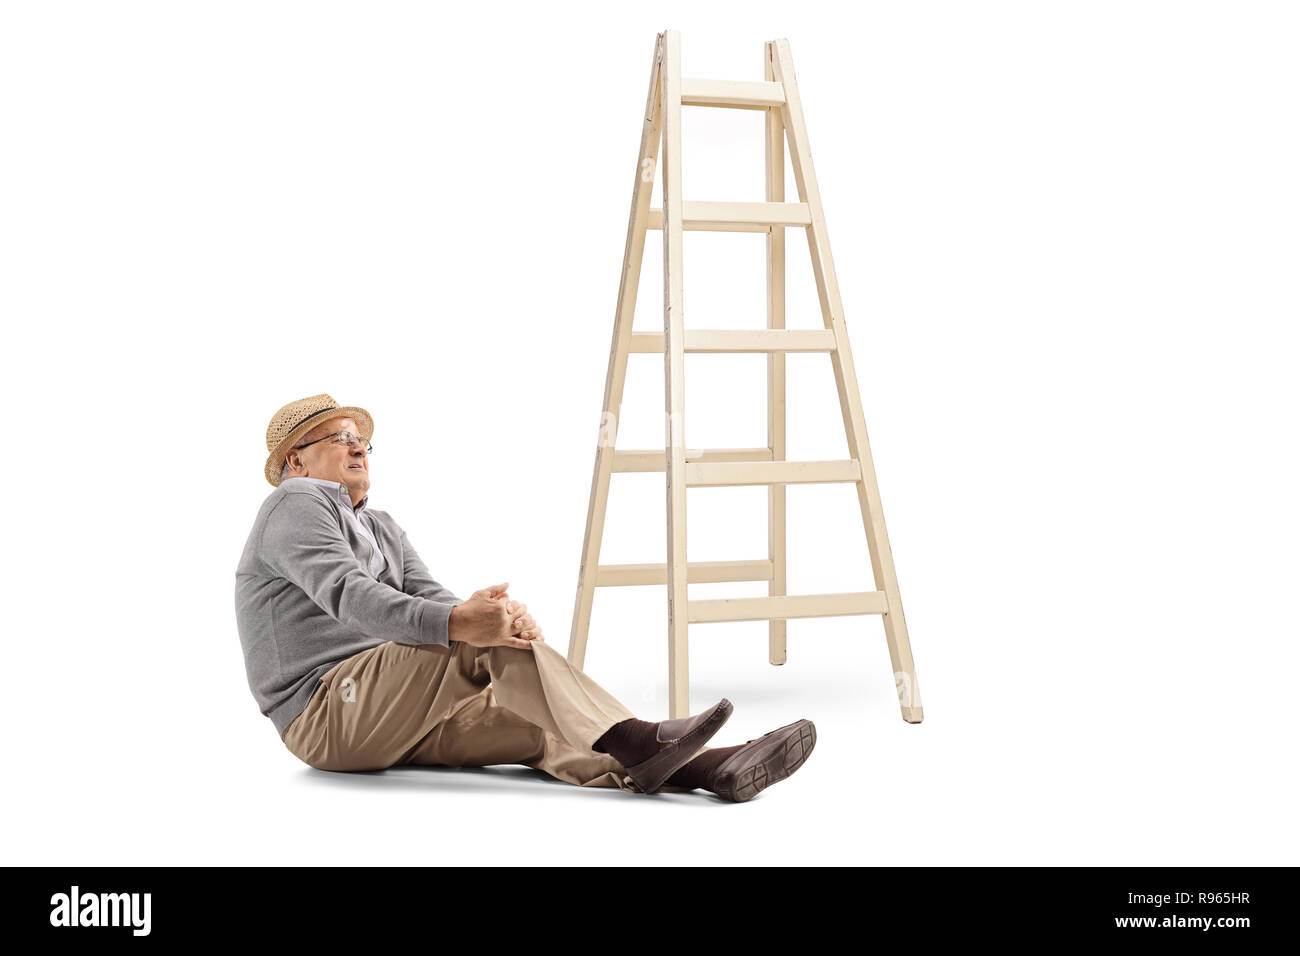 Elderly man fallen off a ladder sitting on the floor and holding his knee isolated on white background - Stock Image